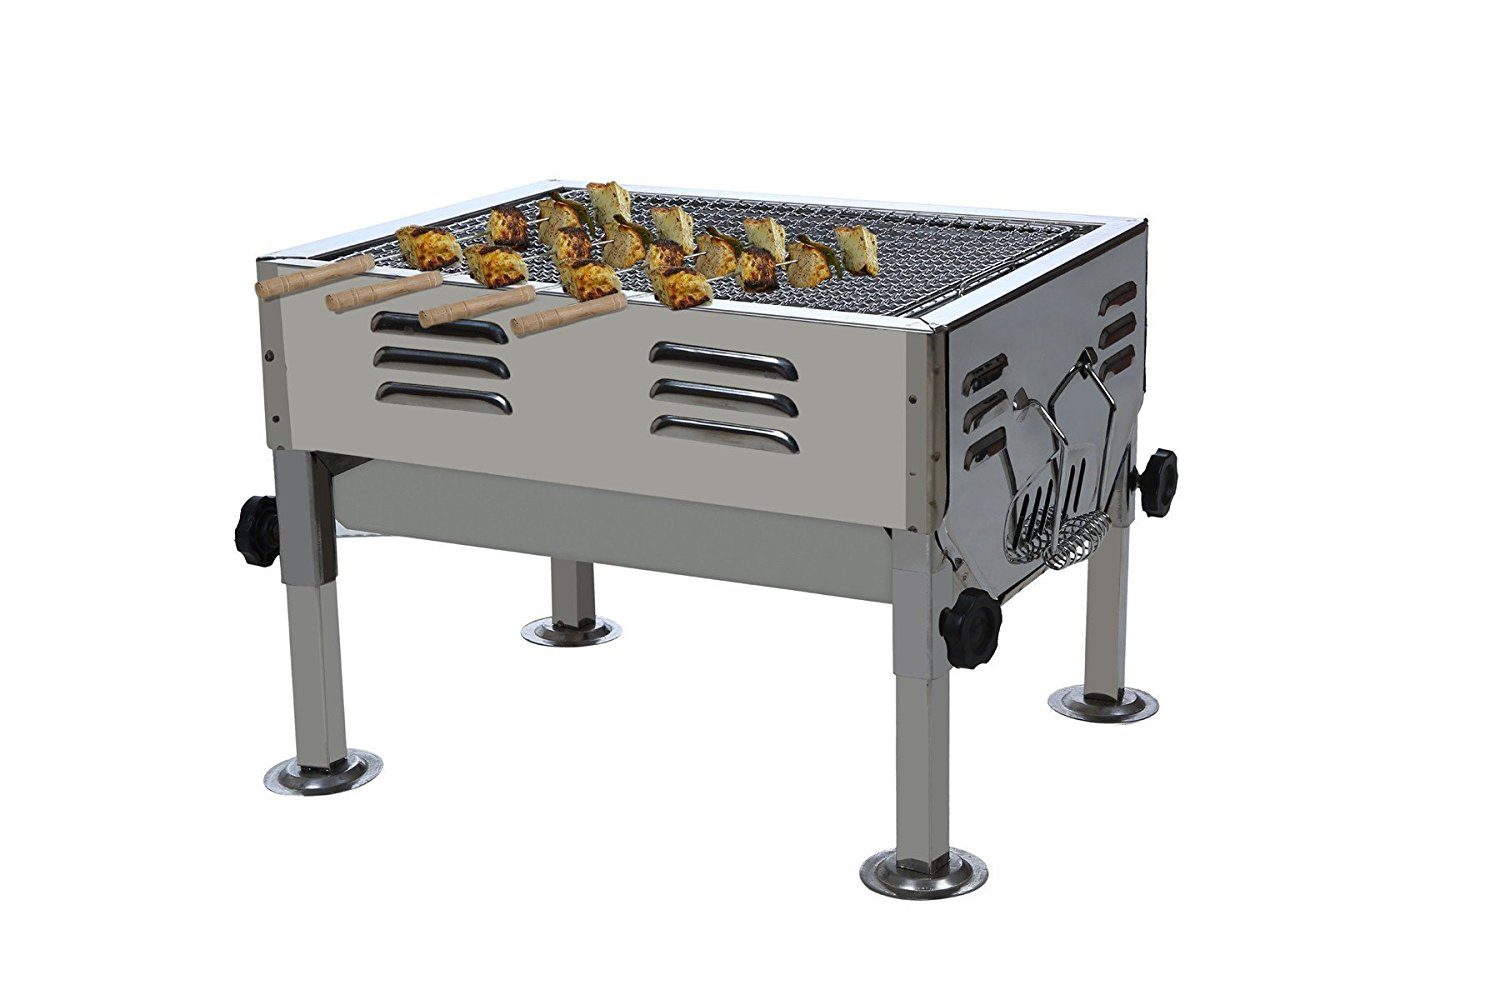 Top 10 Best Barbeque Grills in India 2019 – Price & Reviews 11